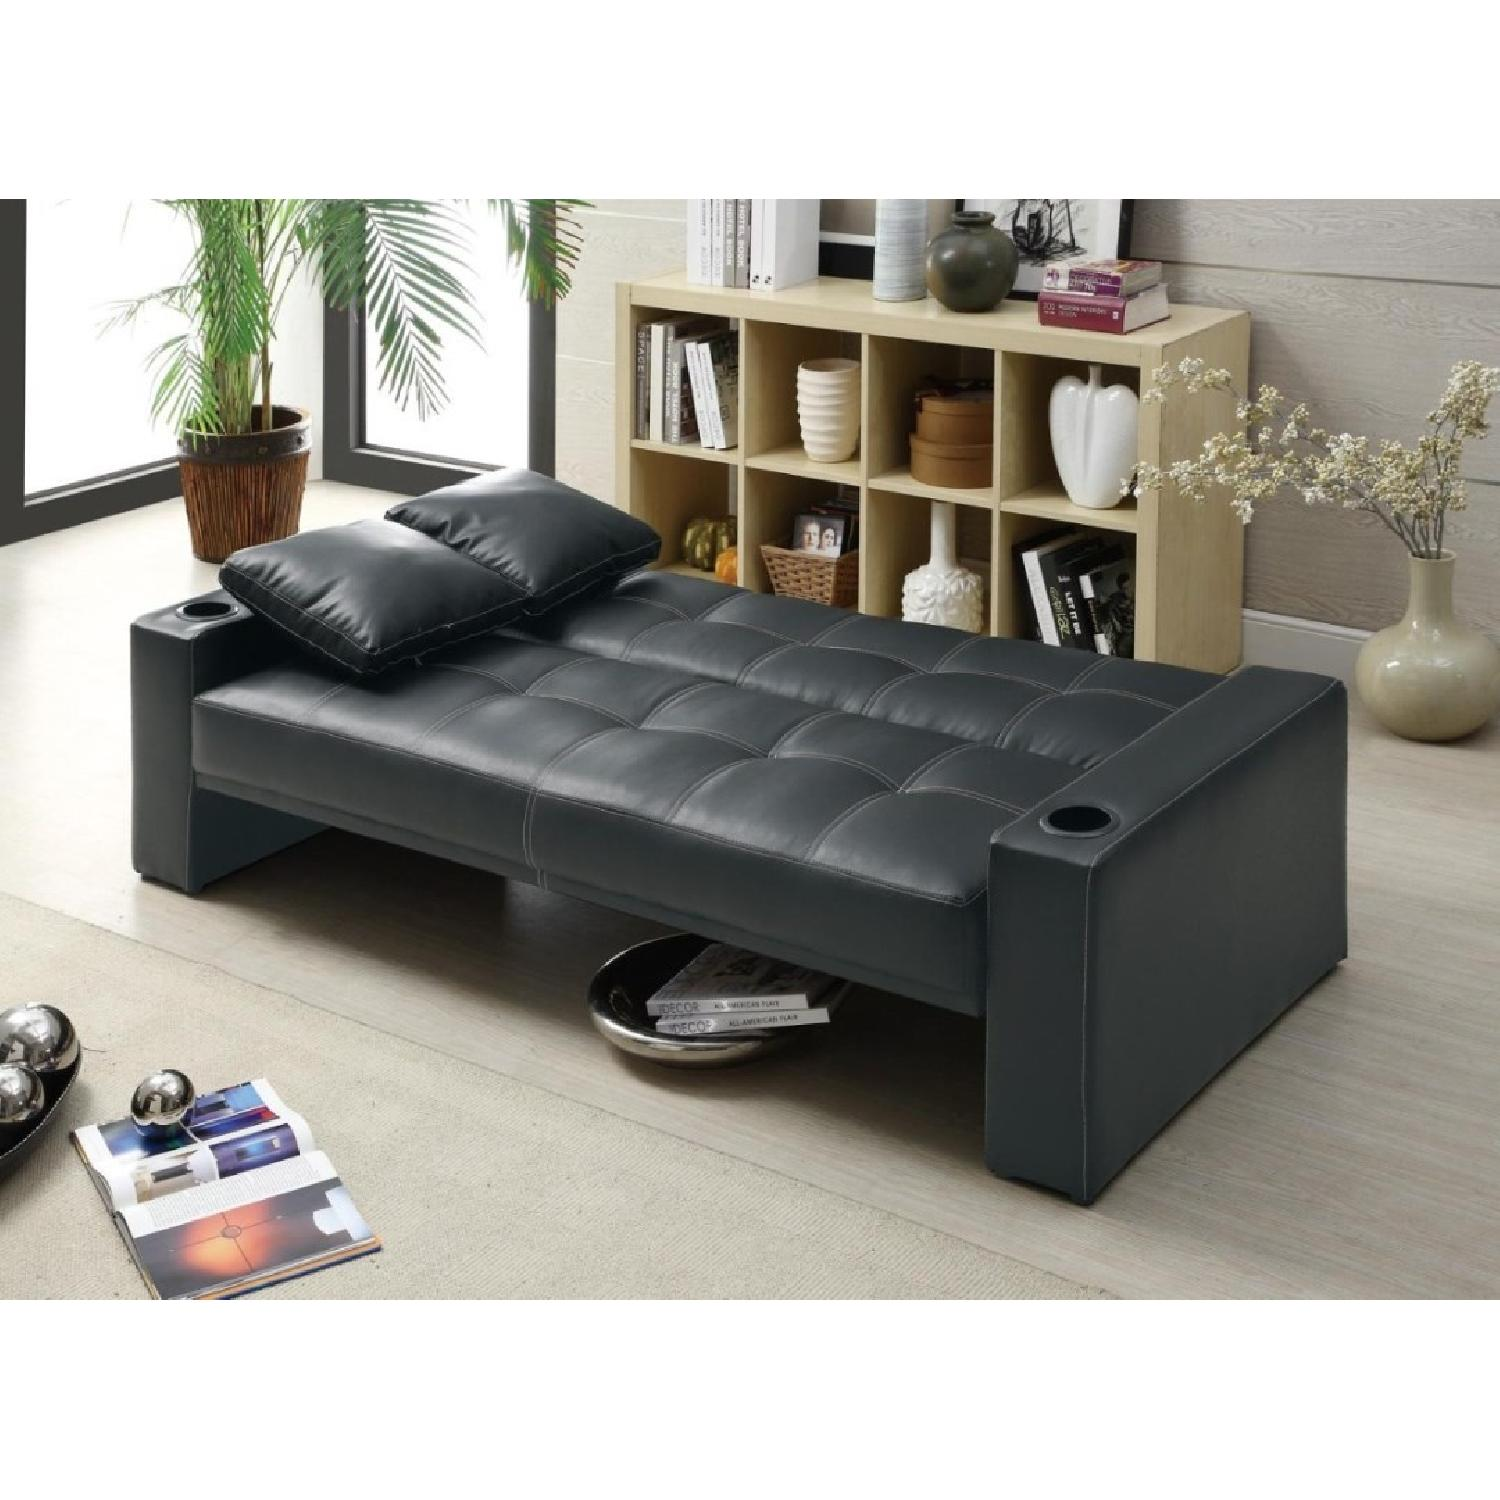 Sofabed in Black w/ Armrest Cupholders & 2 Accent Pillows - image-2